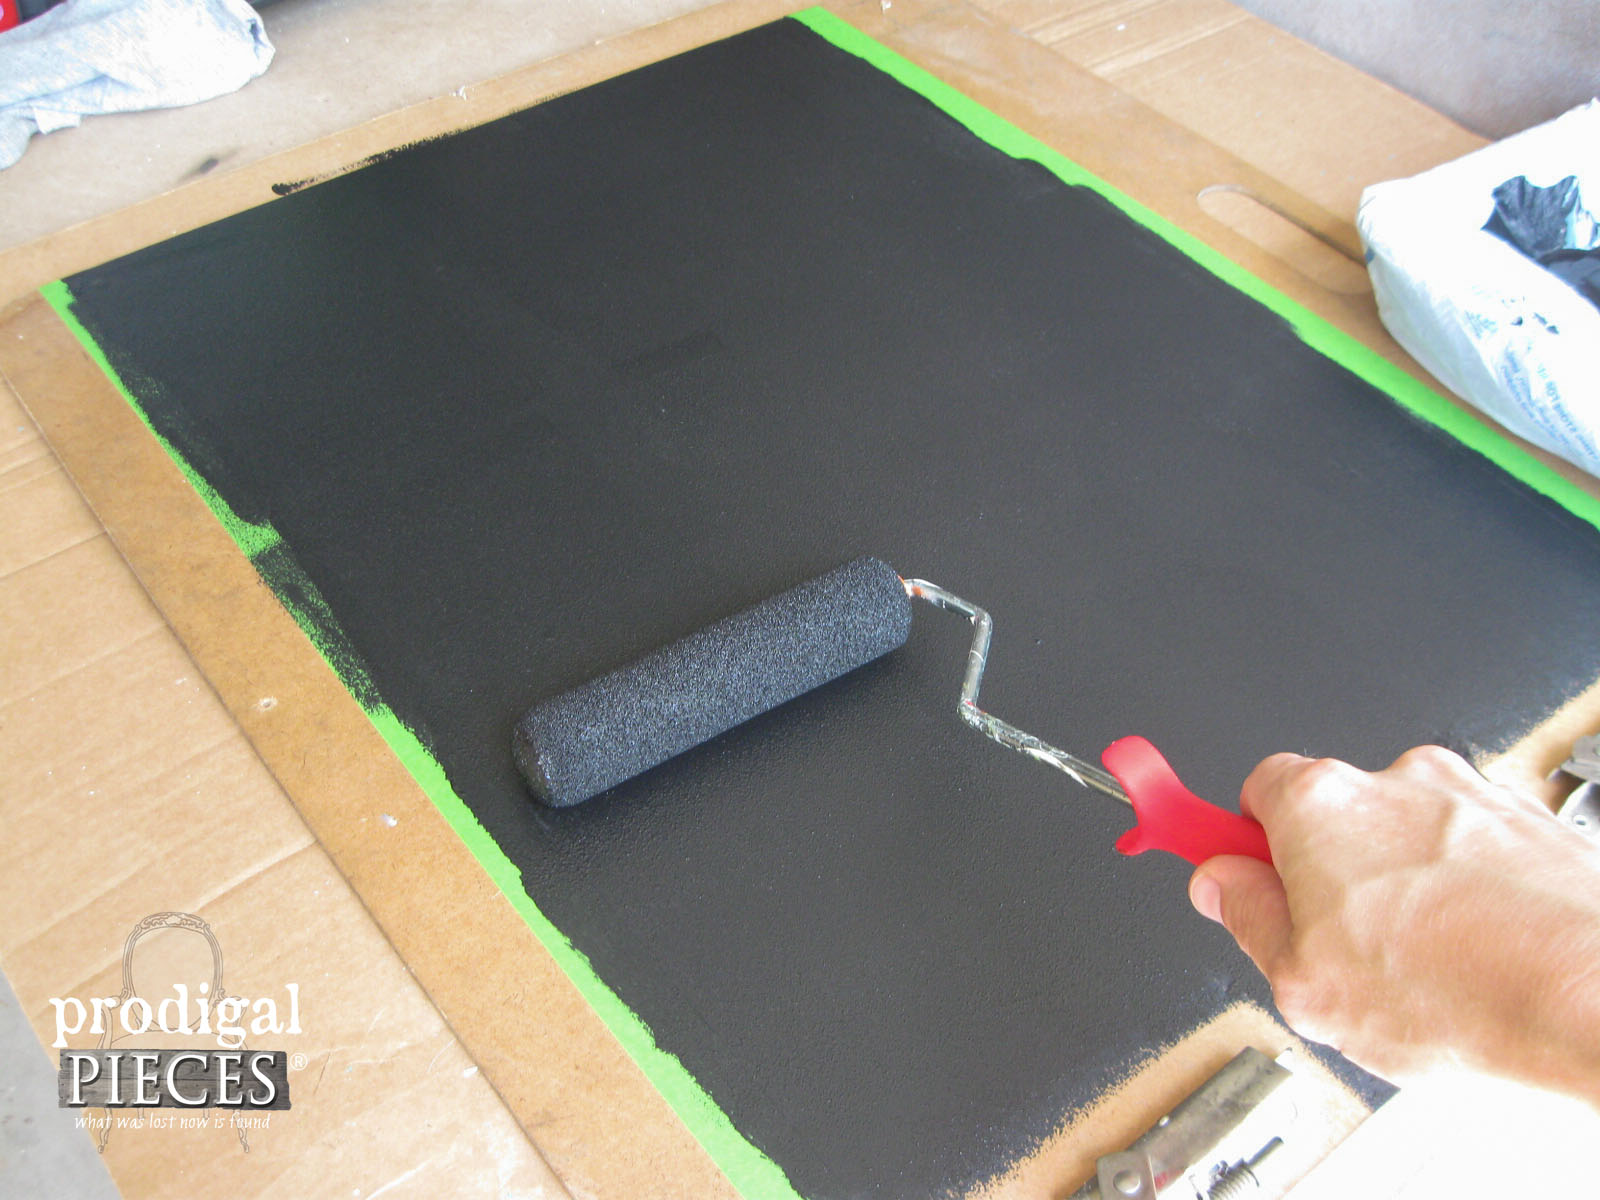 Applying Rust-Oleum Magnetic Primer to Message Board | Prodigal Pieces | www.prodigalpieces.com